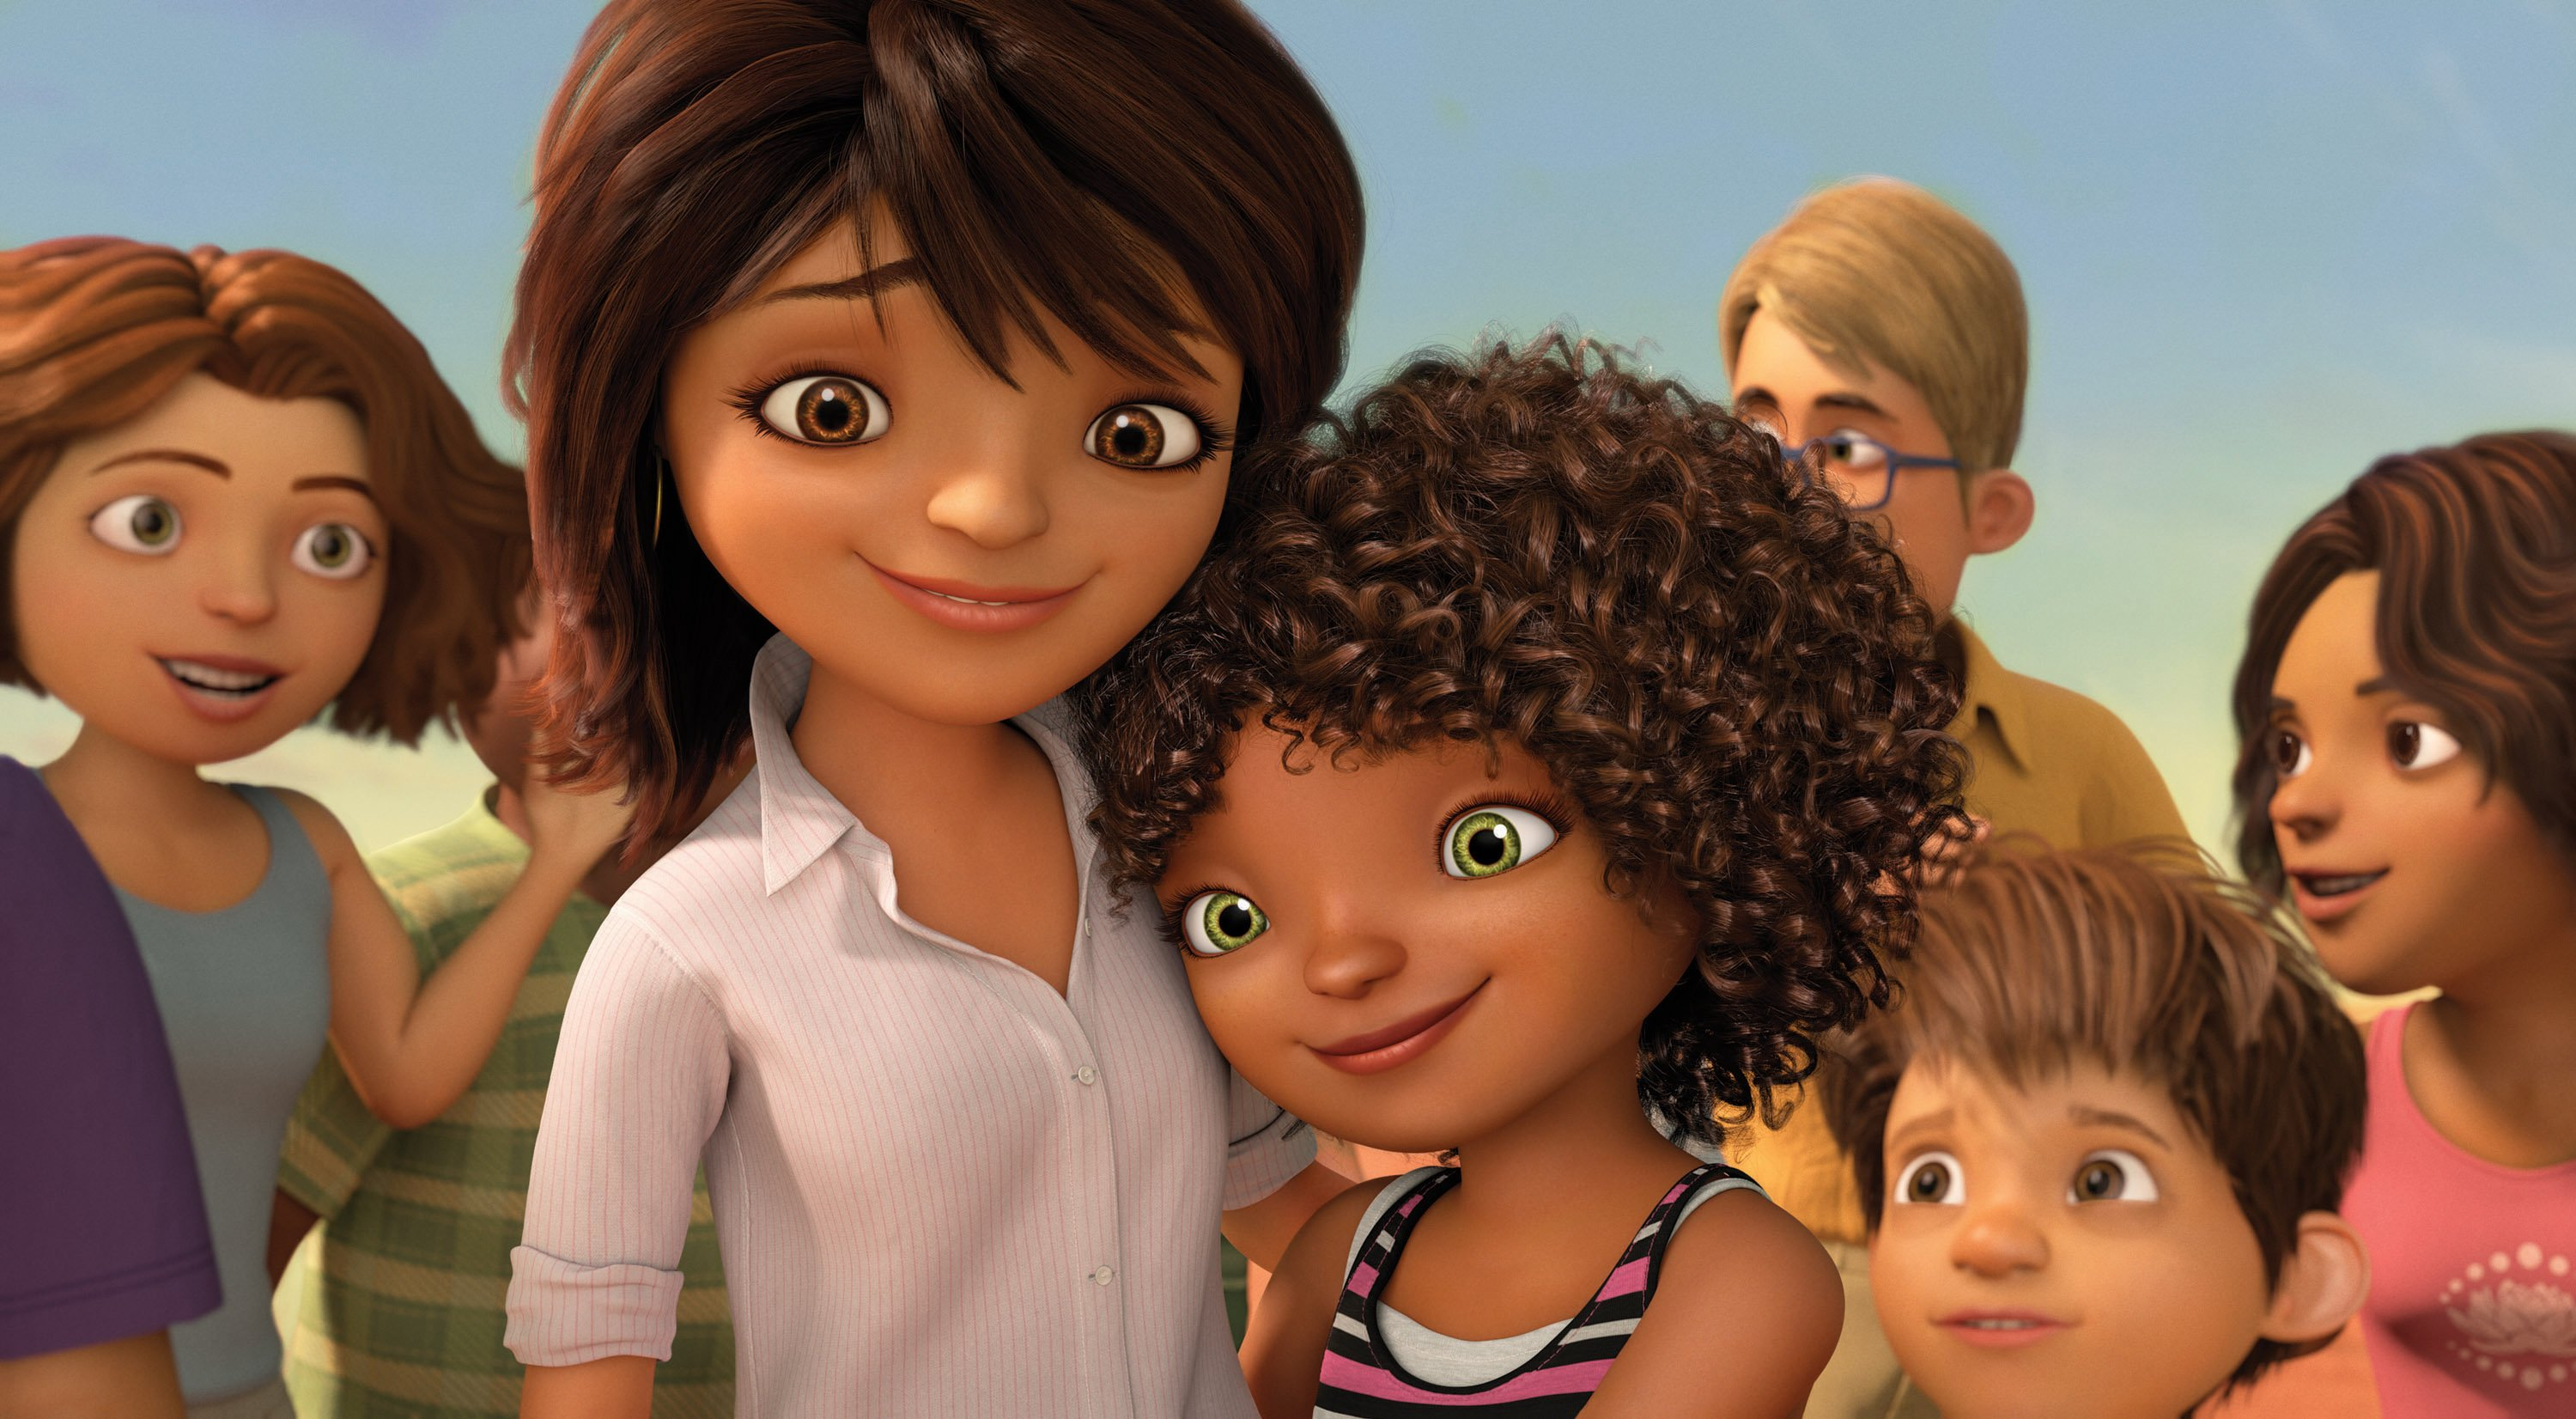 Review DreamWorks Home Take Your kids Friends Whoever | The Mary Sue